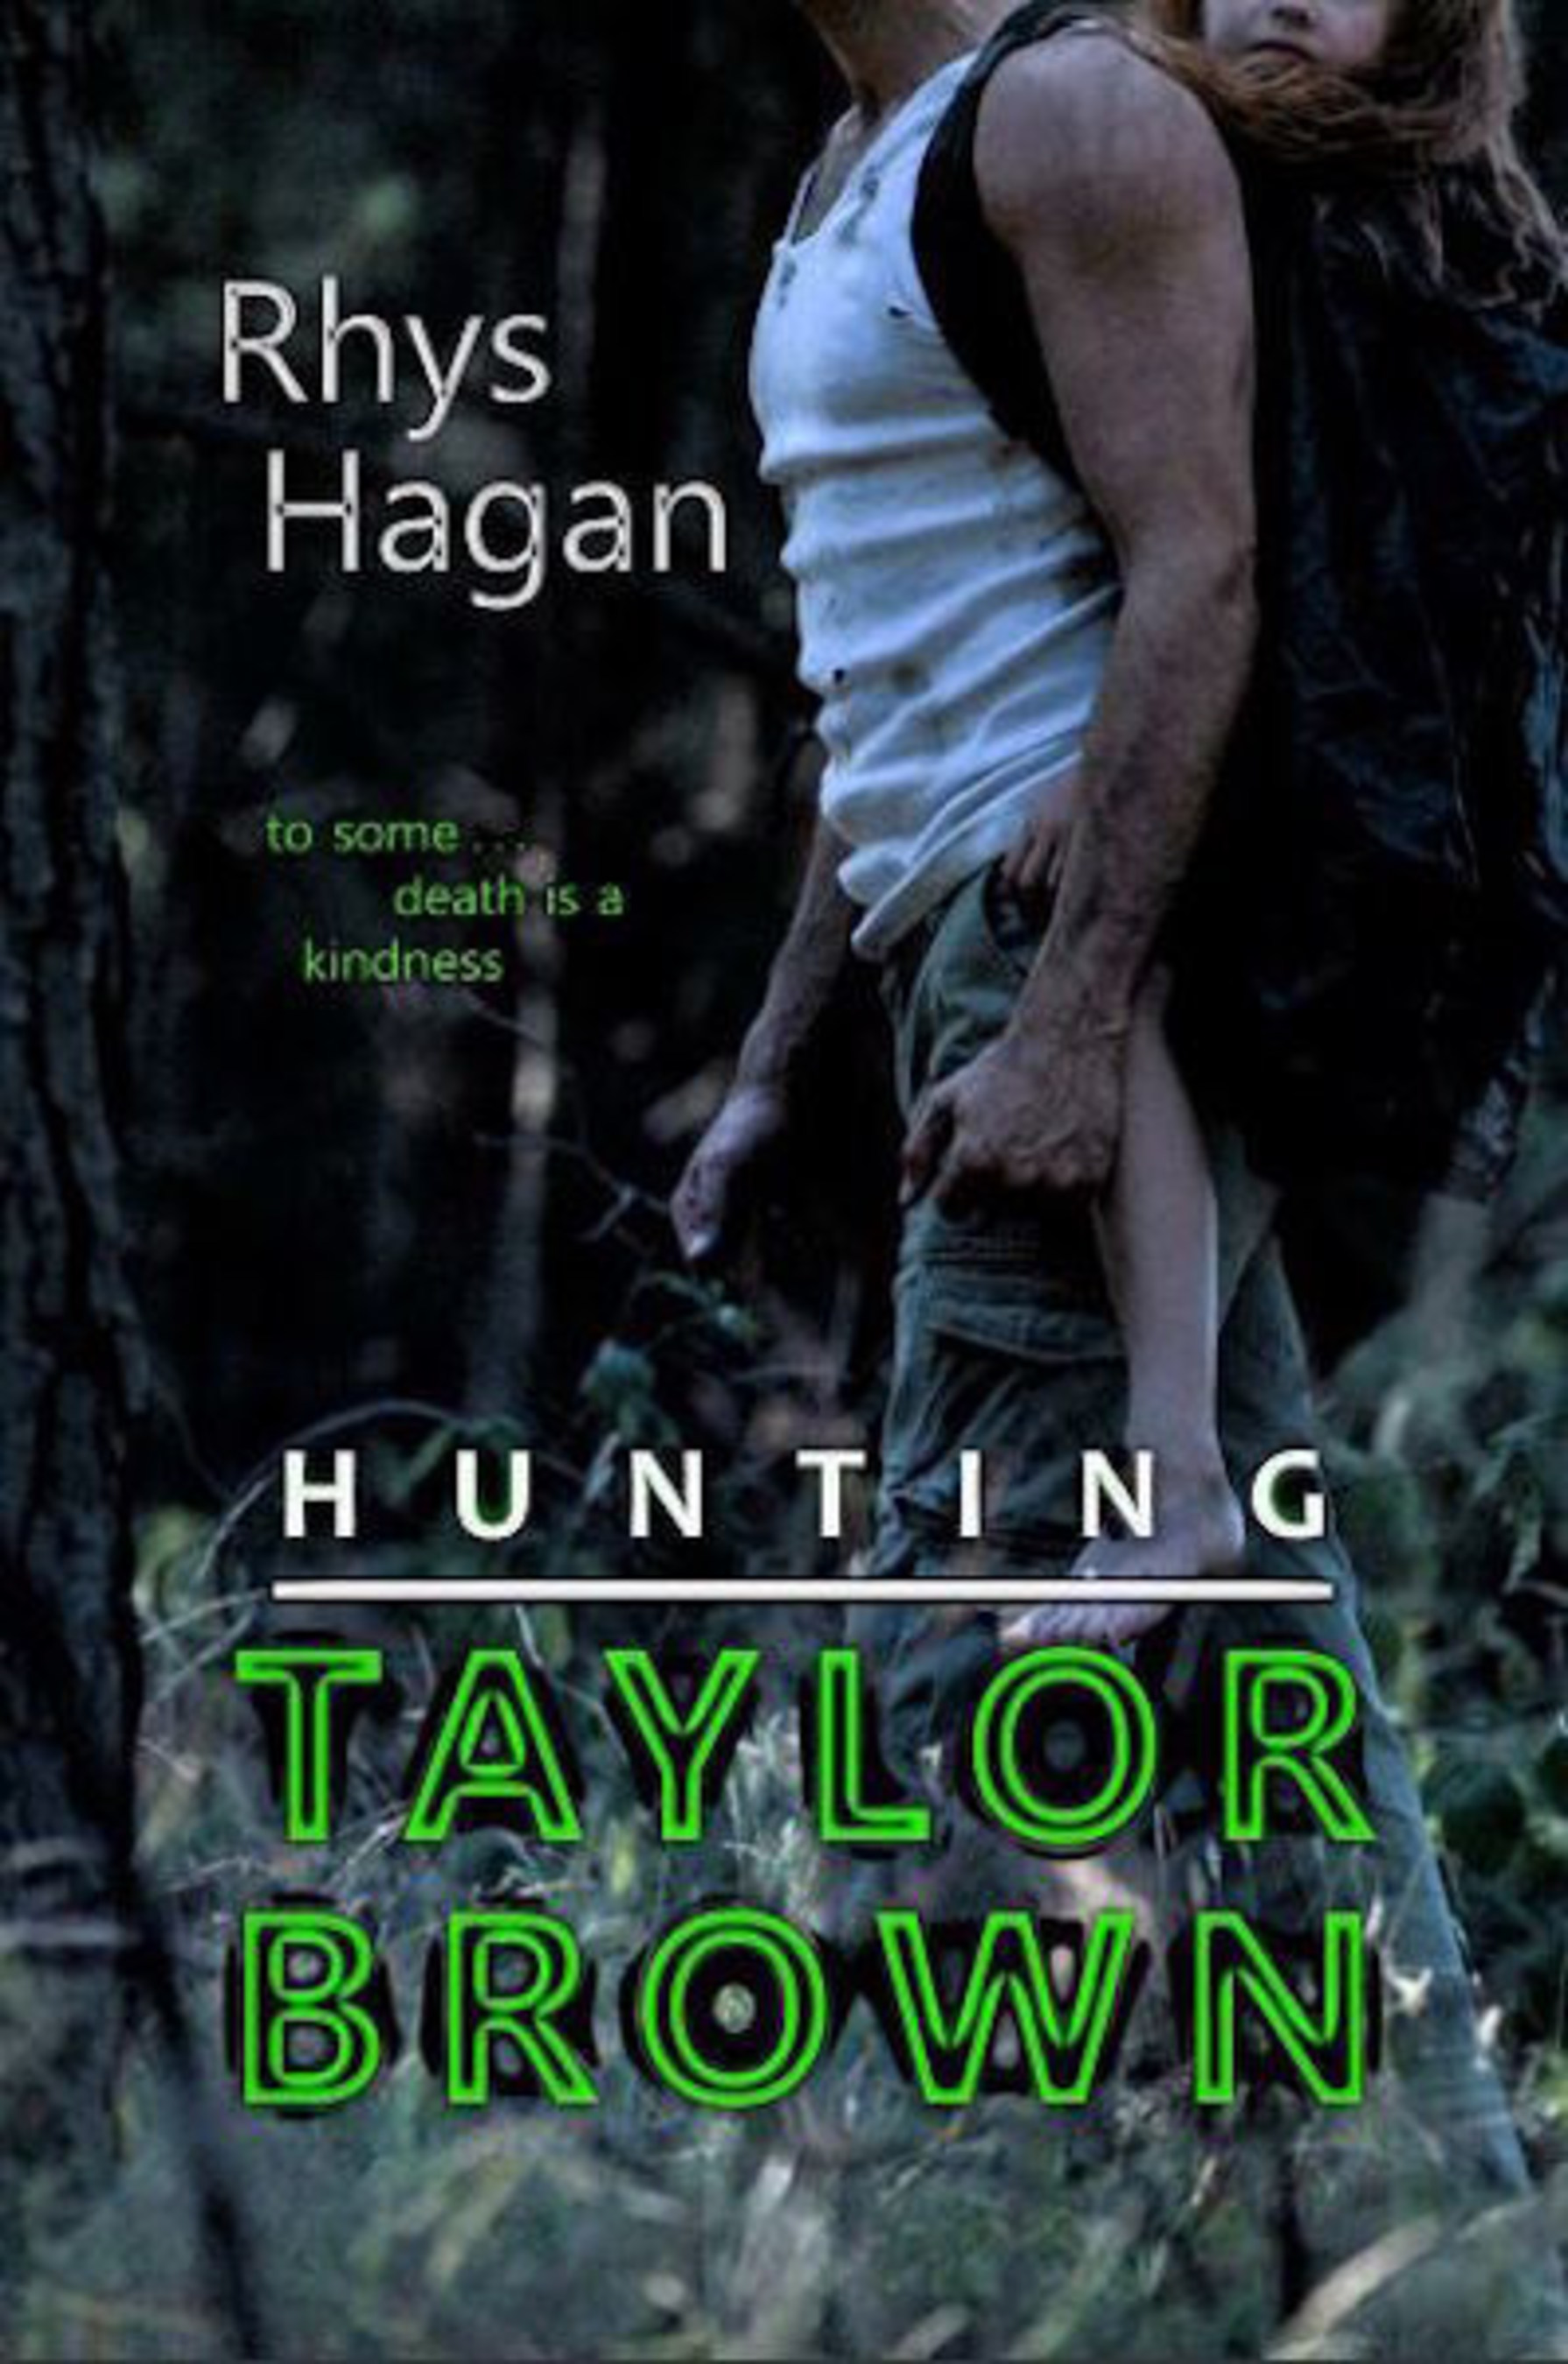 Acclaimed Author of 'Hunting Taylor Brown' Tells All About Life in a Cult